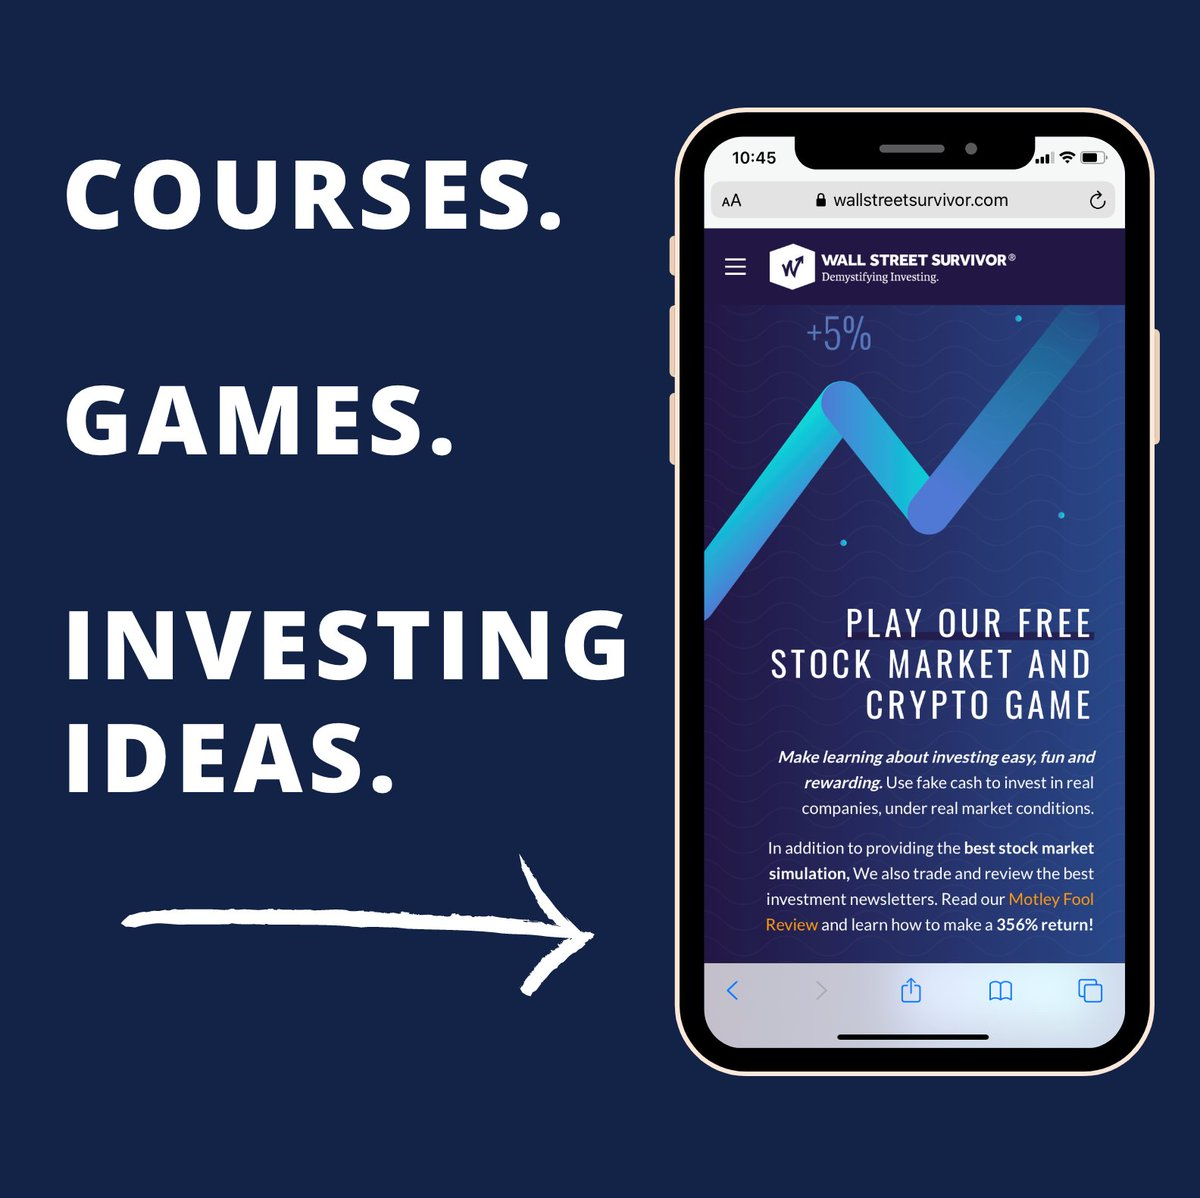 motley fool should invest cryptocurrency